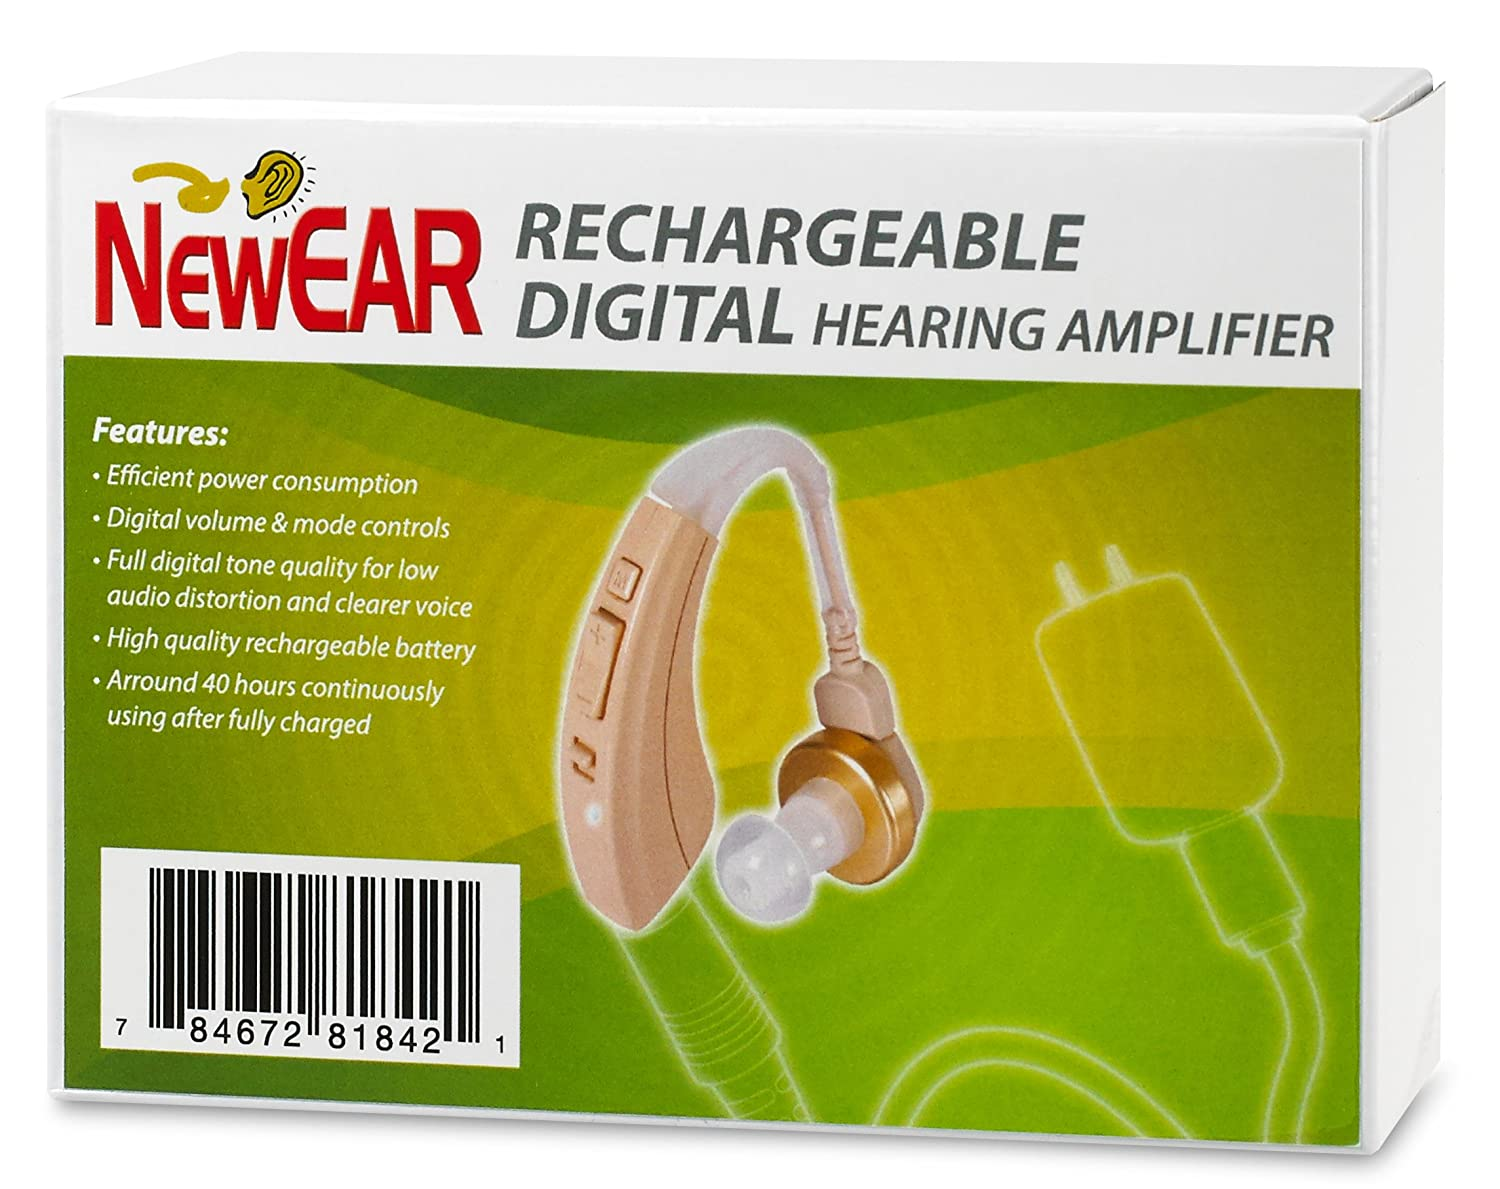 Rechargeable Newear High Quality Digital Ear Hearing Living Aids Amplifiers Accessories Amplifier Fda Approved New Model Health Personal Care